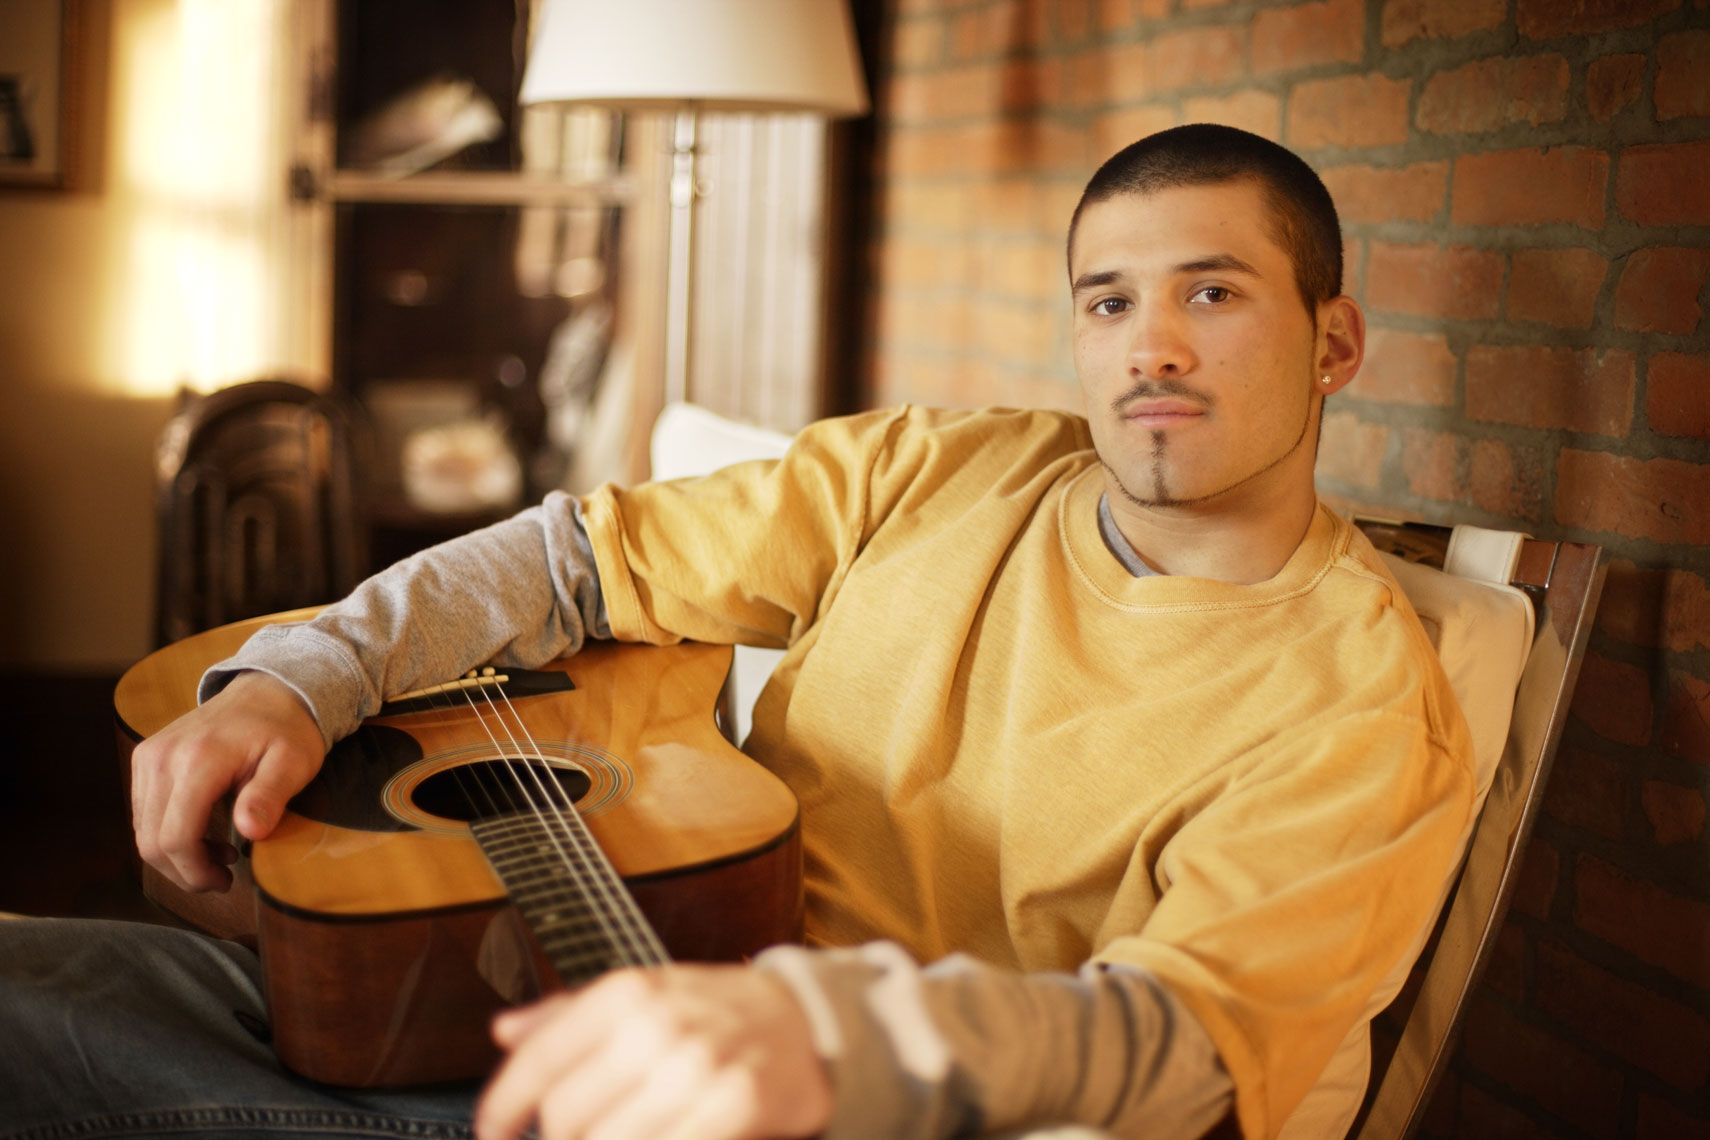 Pharmaceutical advertising portrait of a young man with a guitar